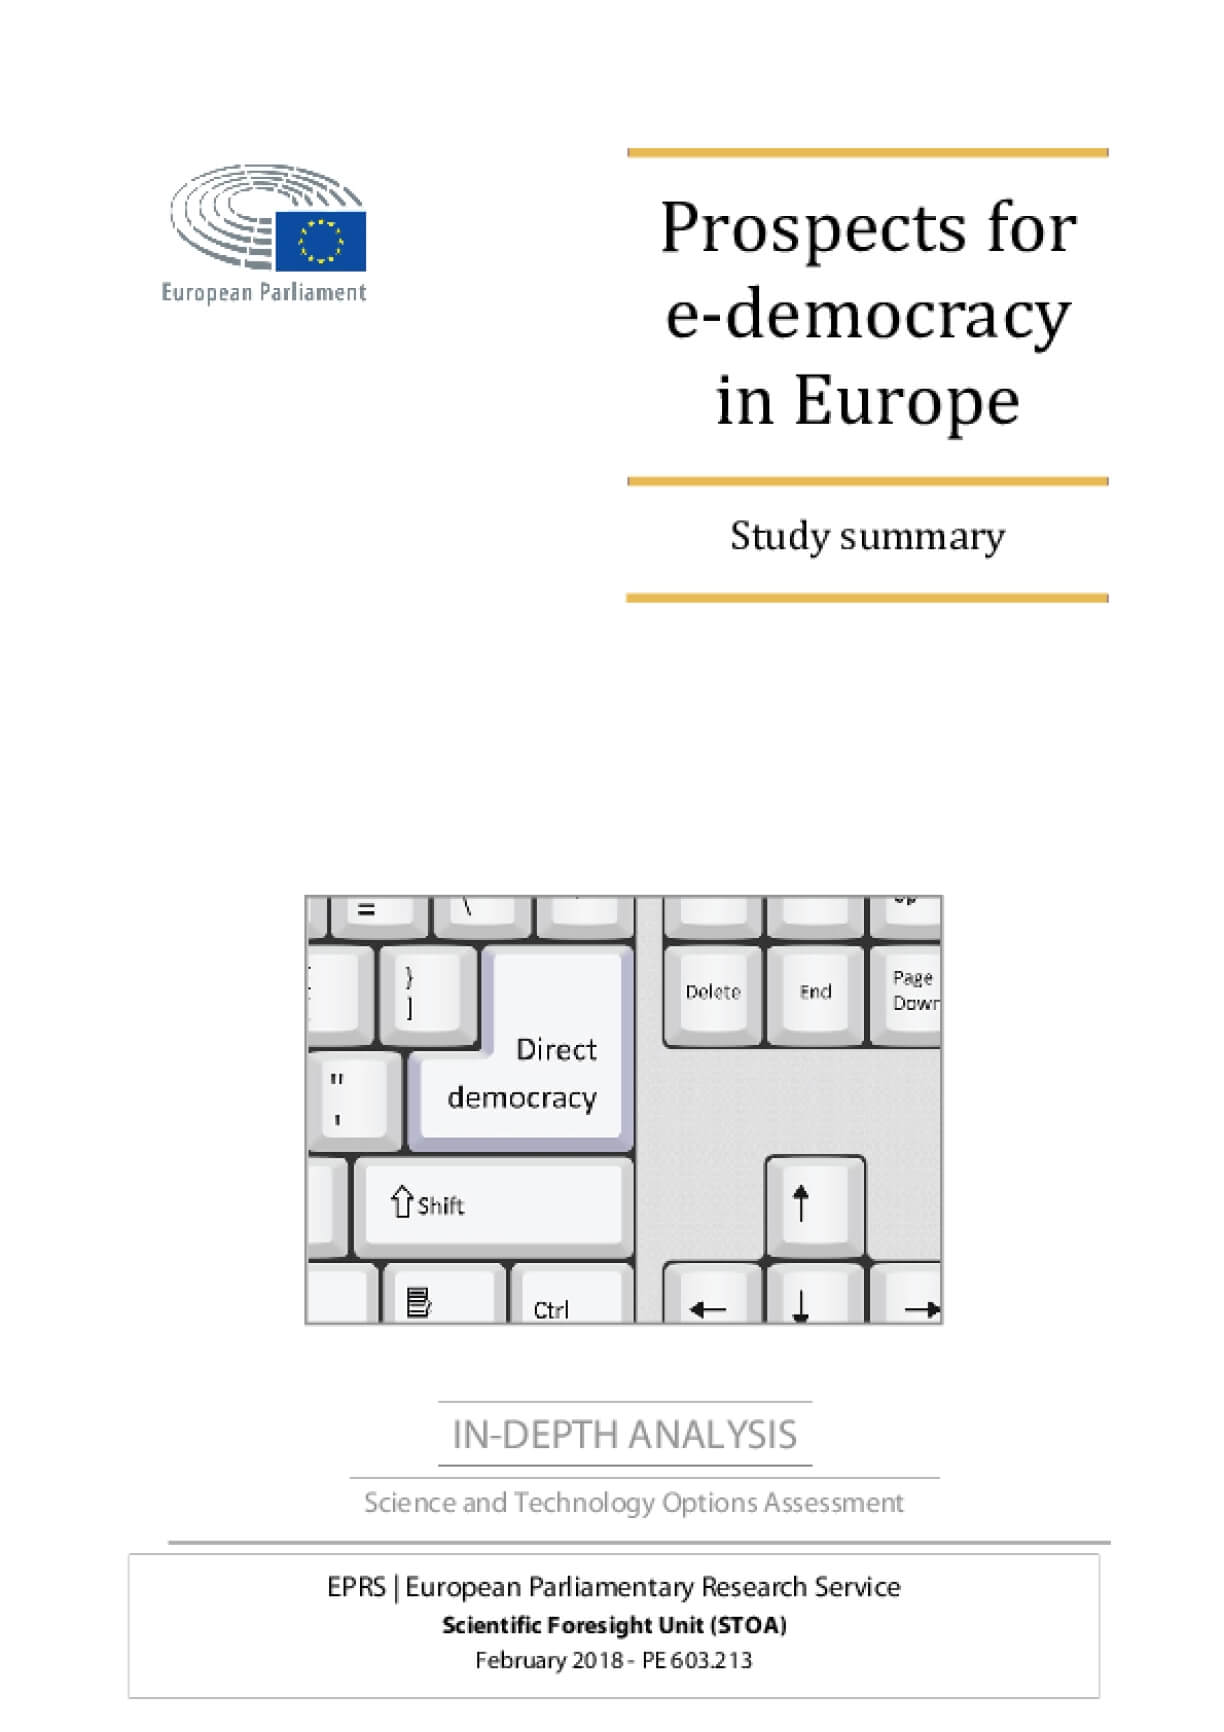 Prospects for e-democracy in Europe